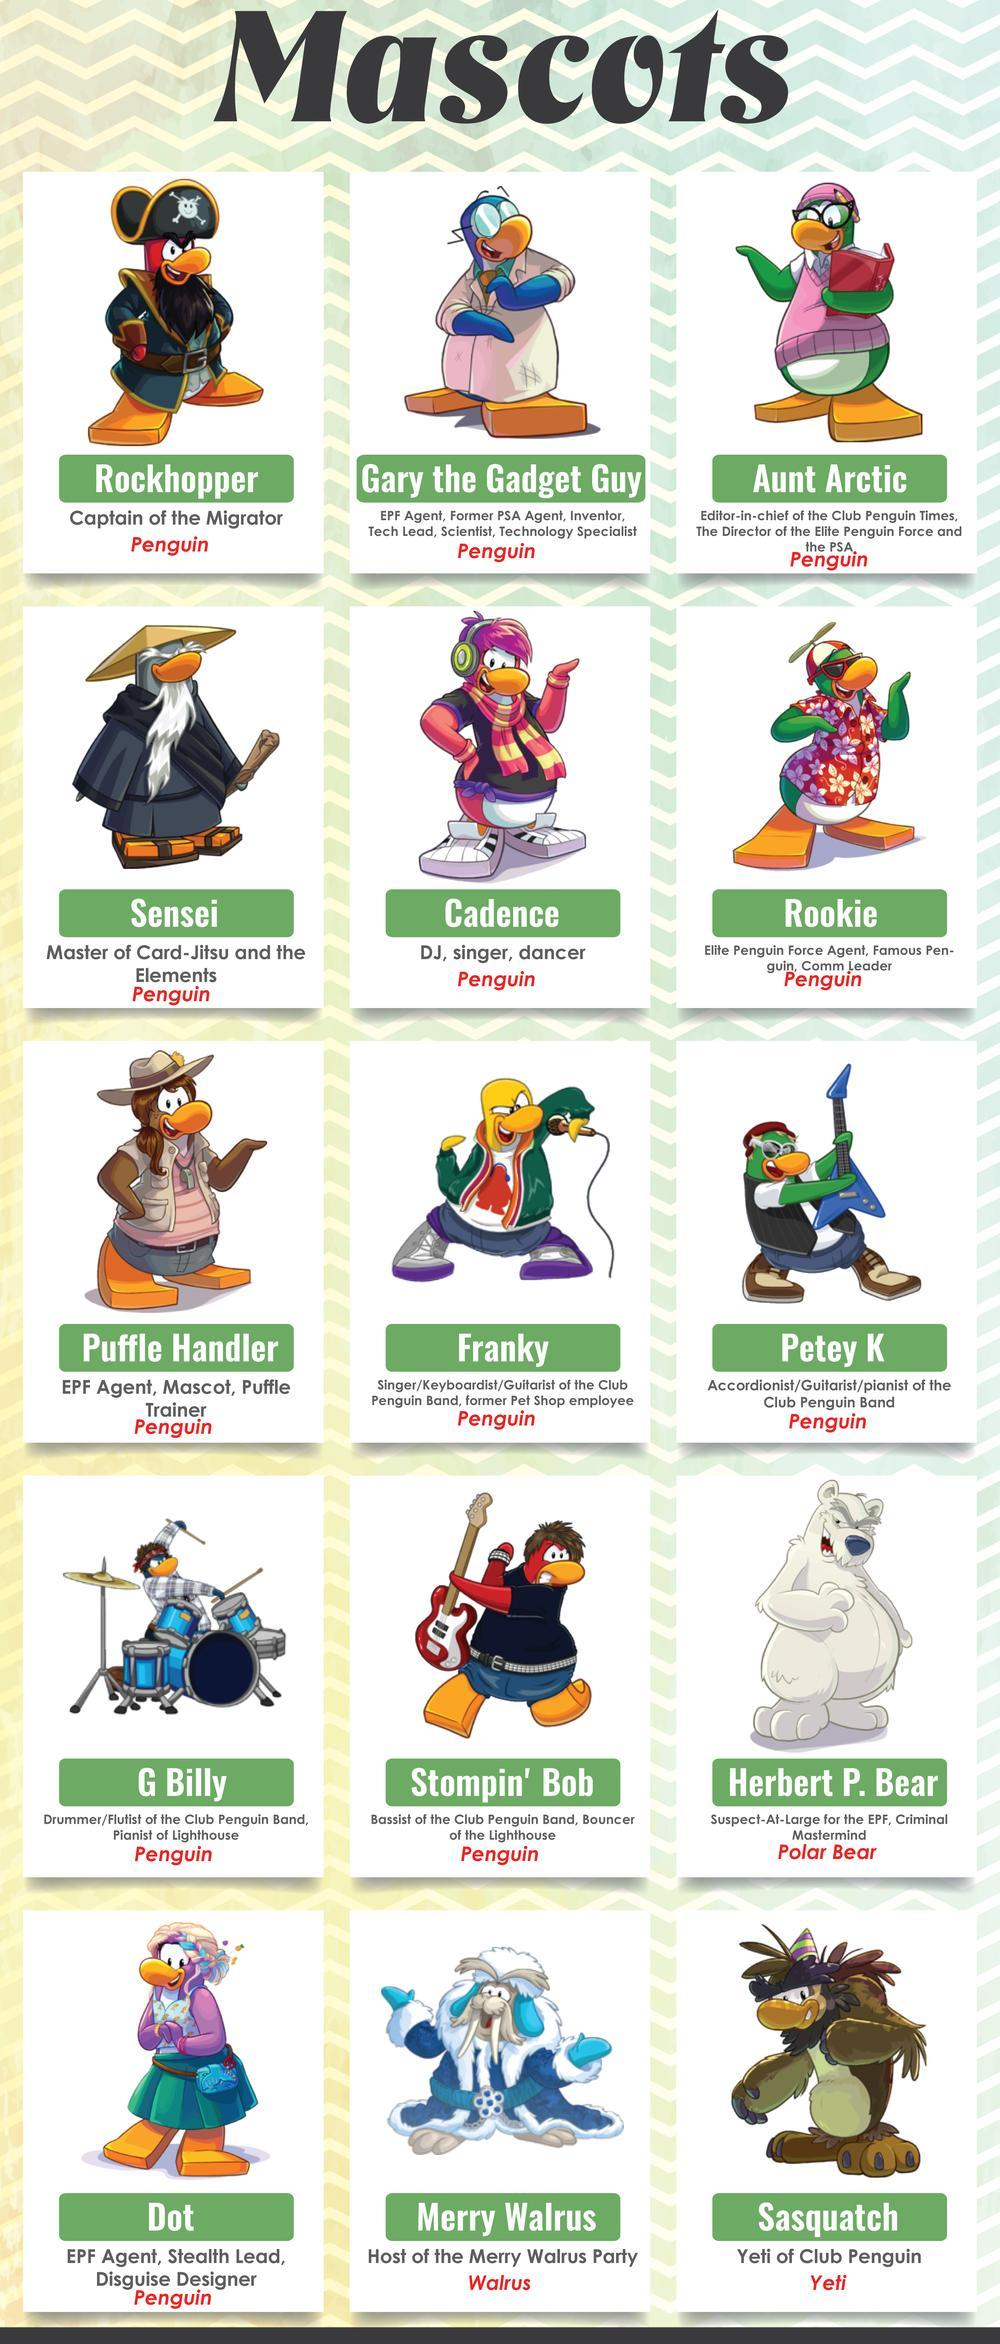 Penguin Mission Walkthrough Mascots And Avatars via Gerry Downey